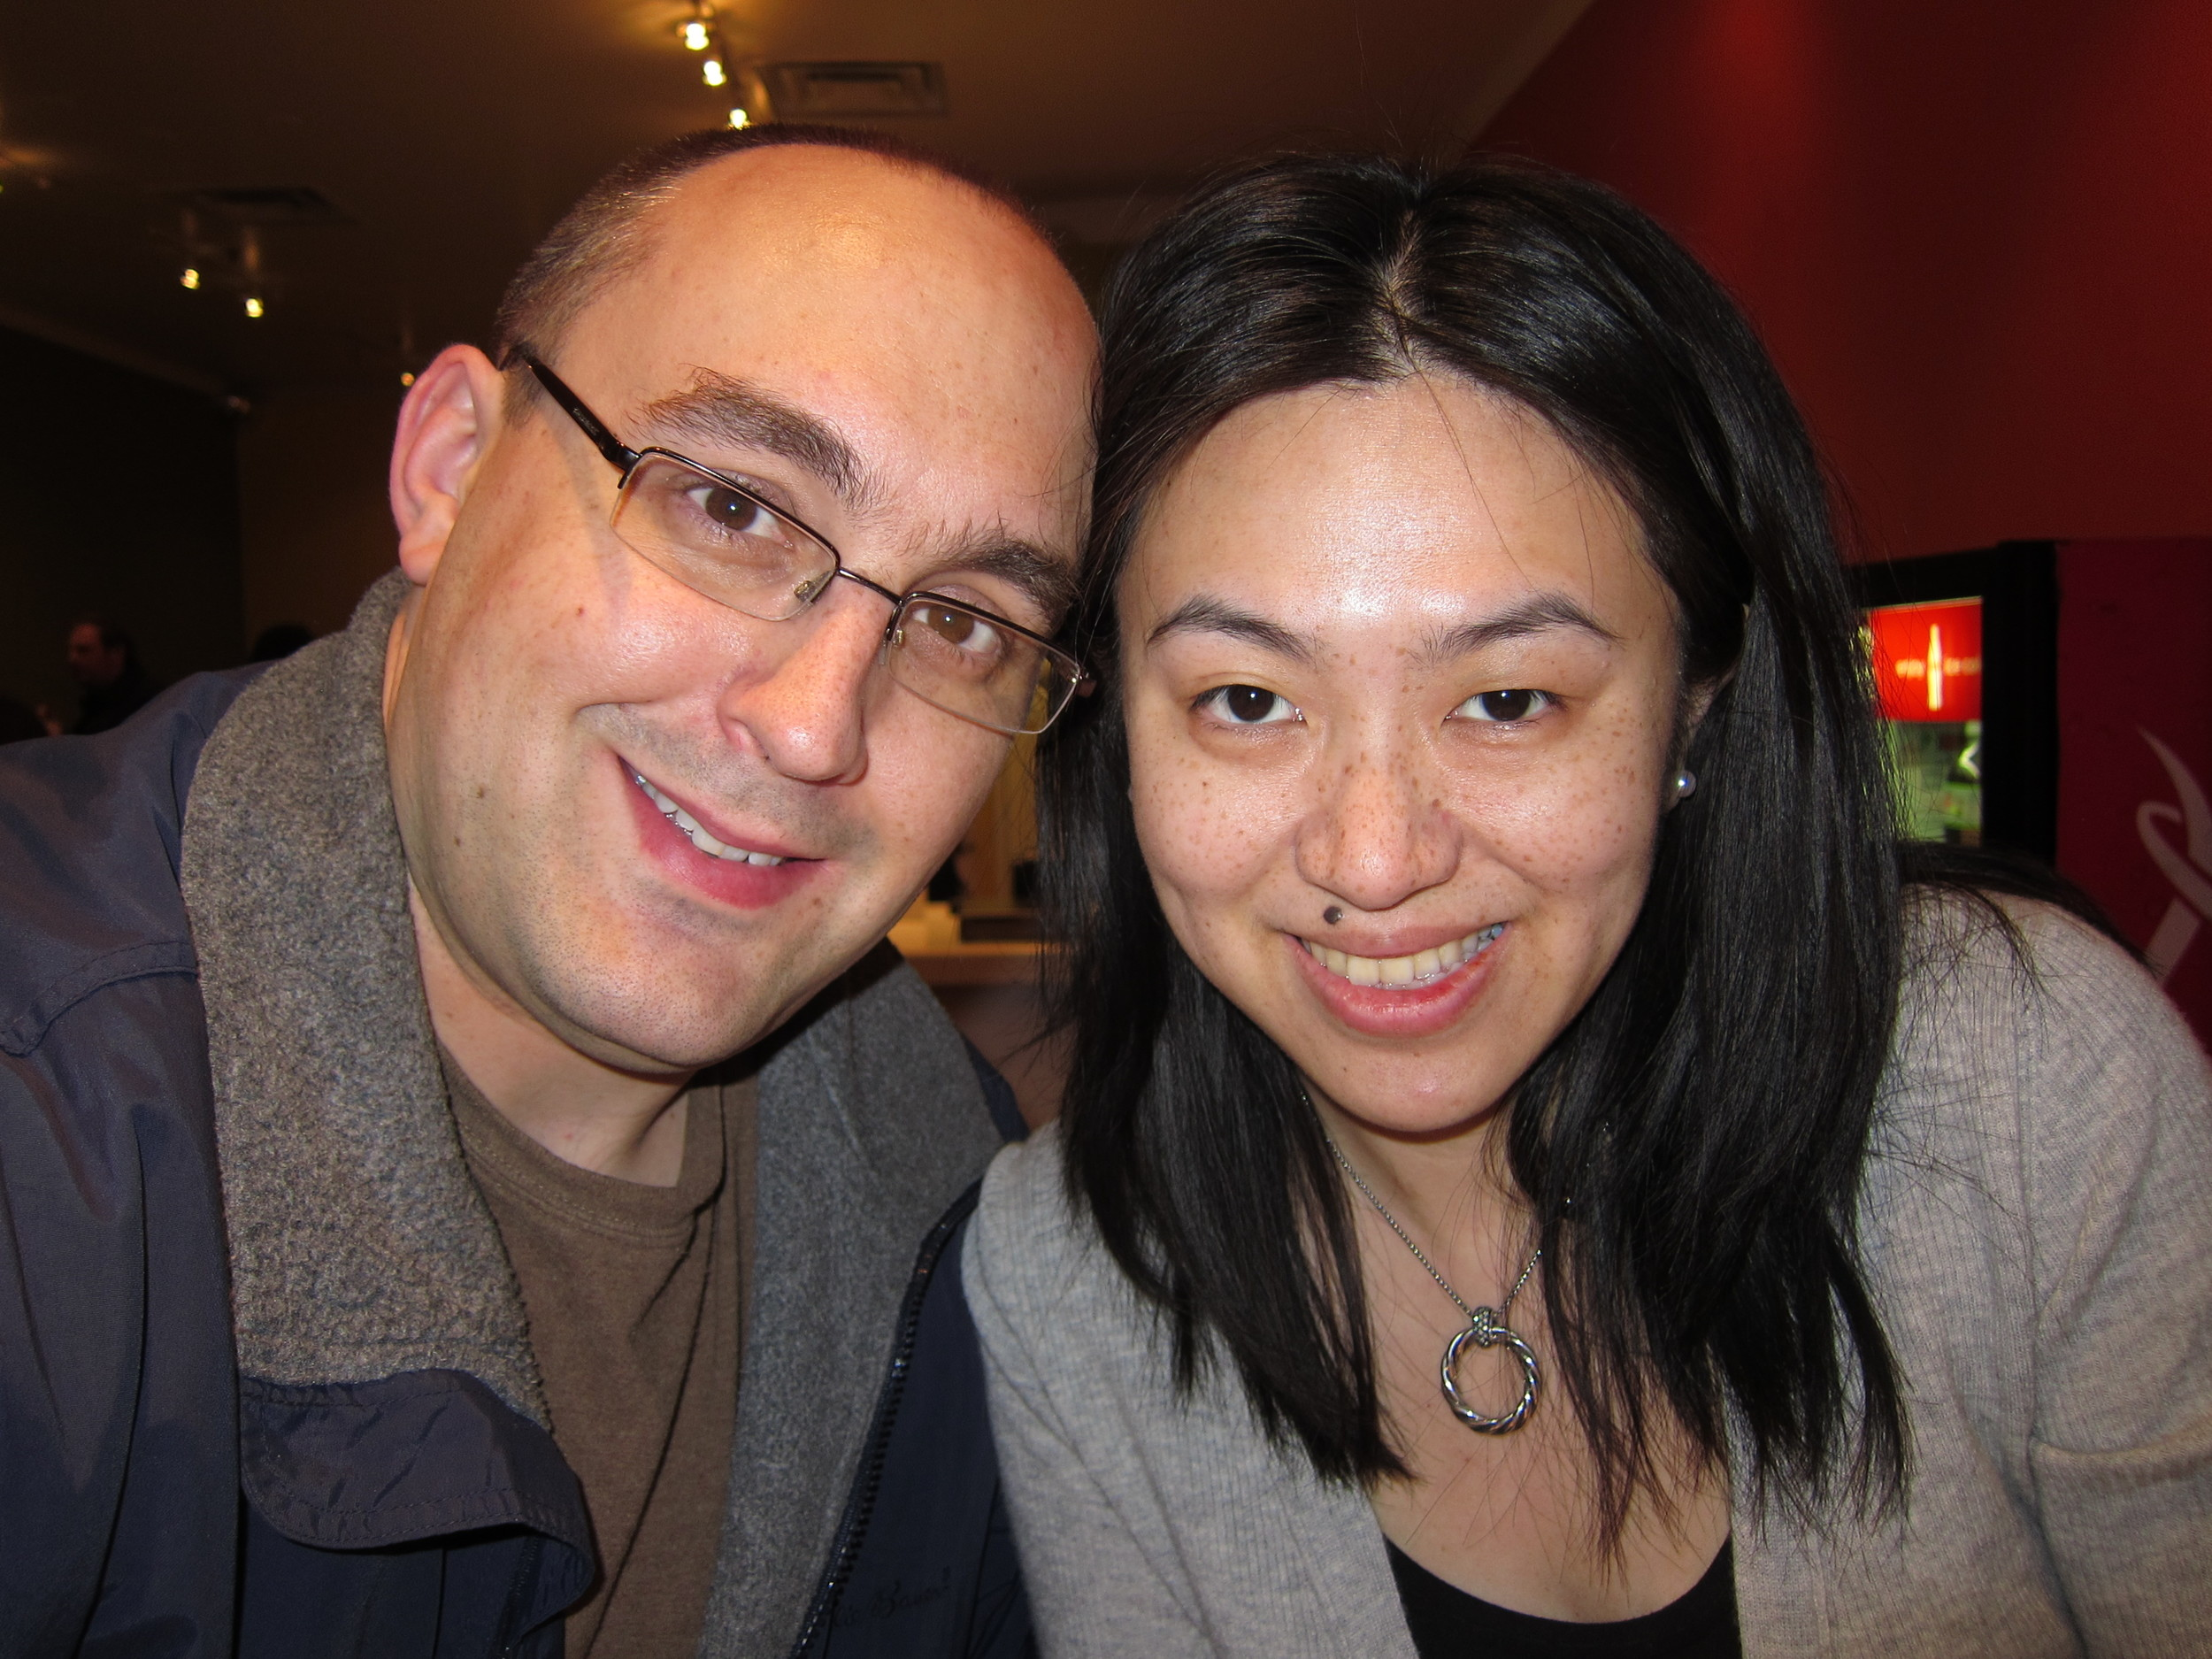 Date night in March 2011, a few days before I was going to start chemotherapy.